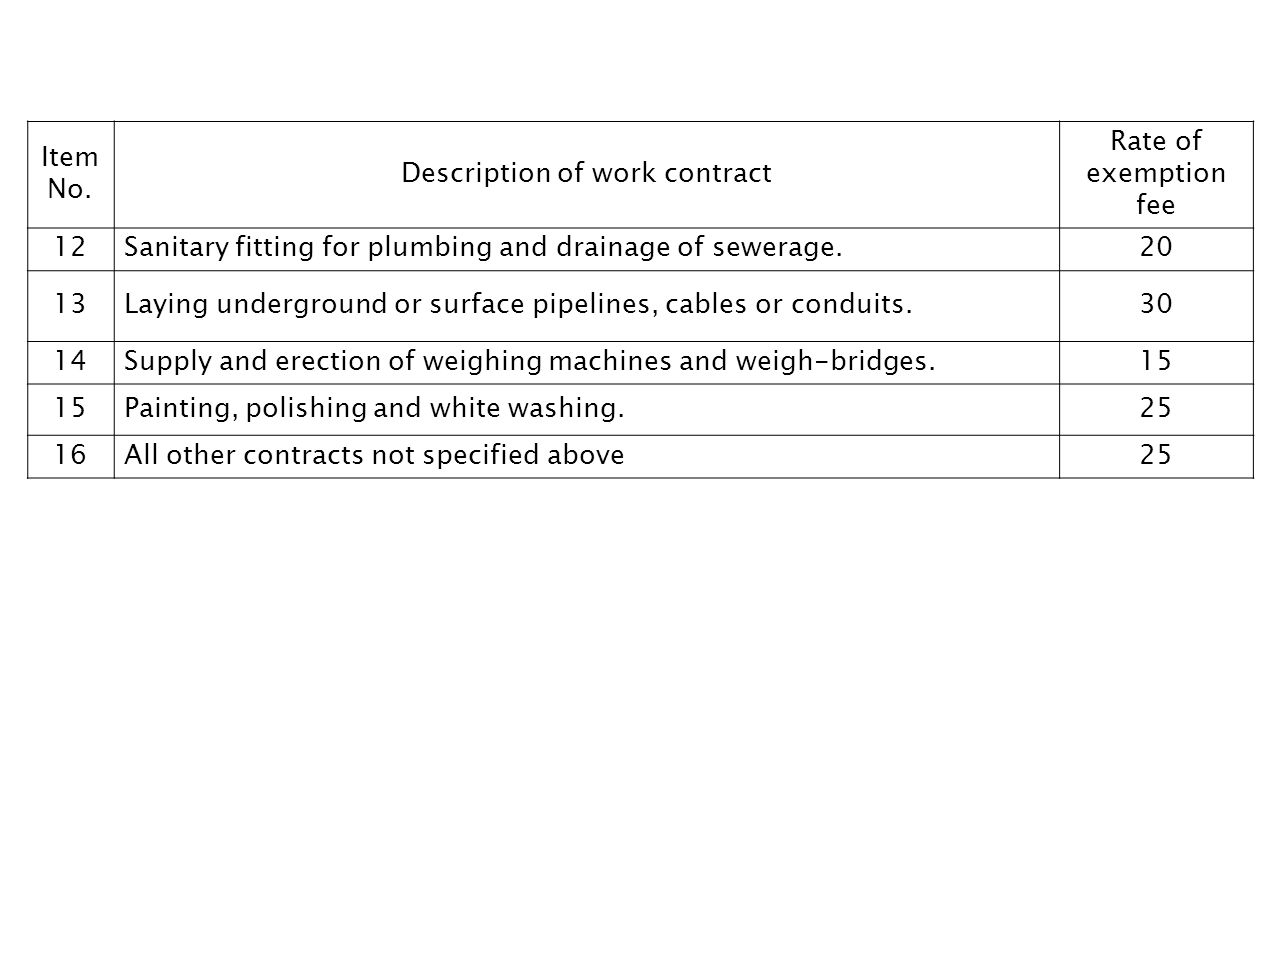 Description of work contract